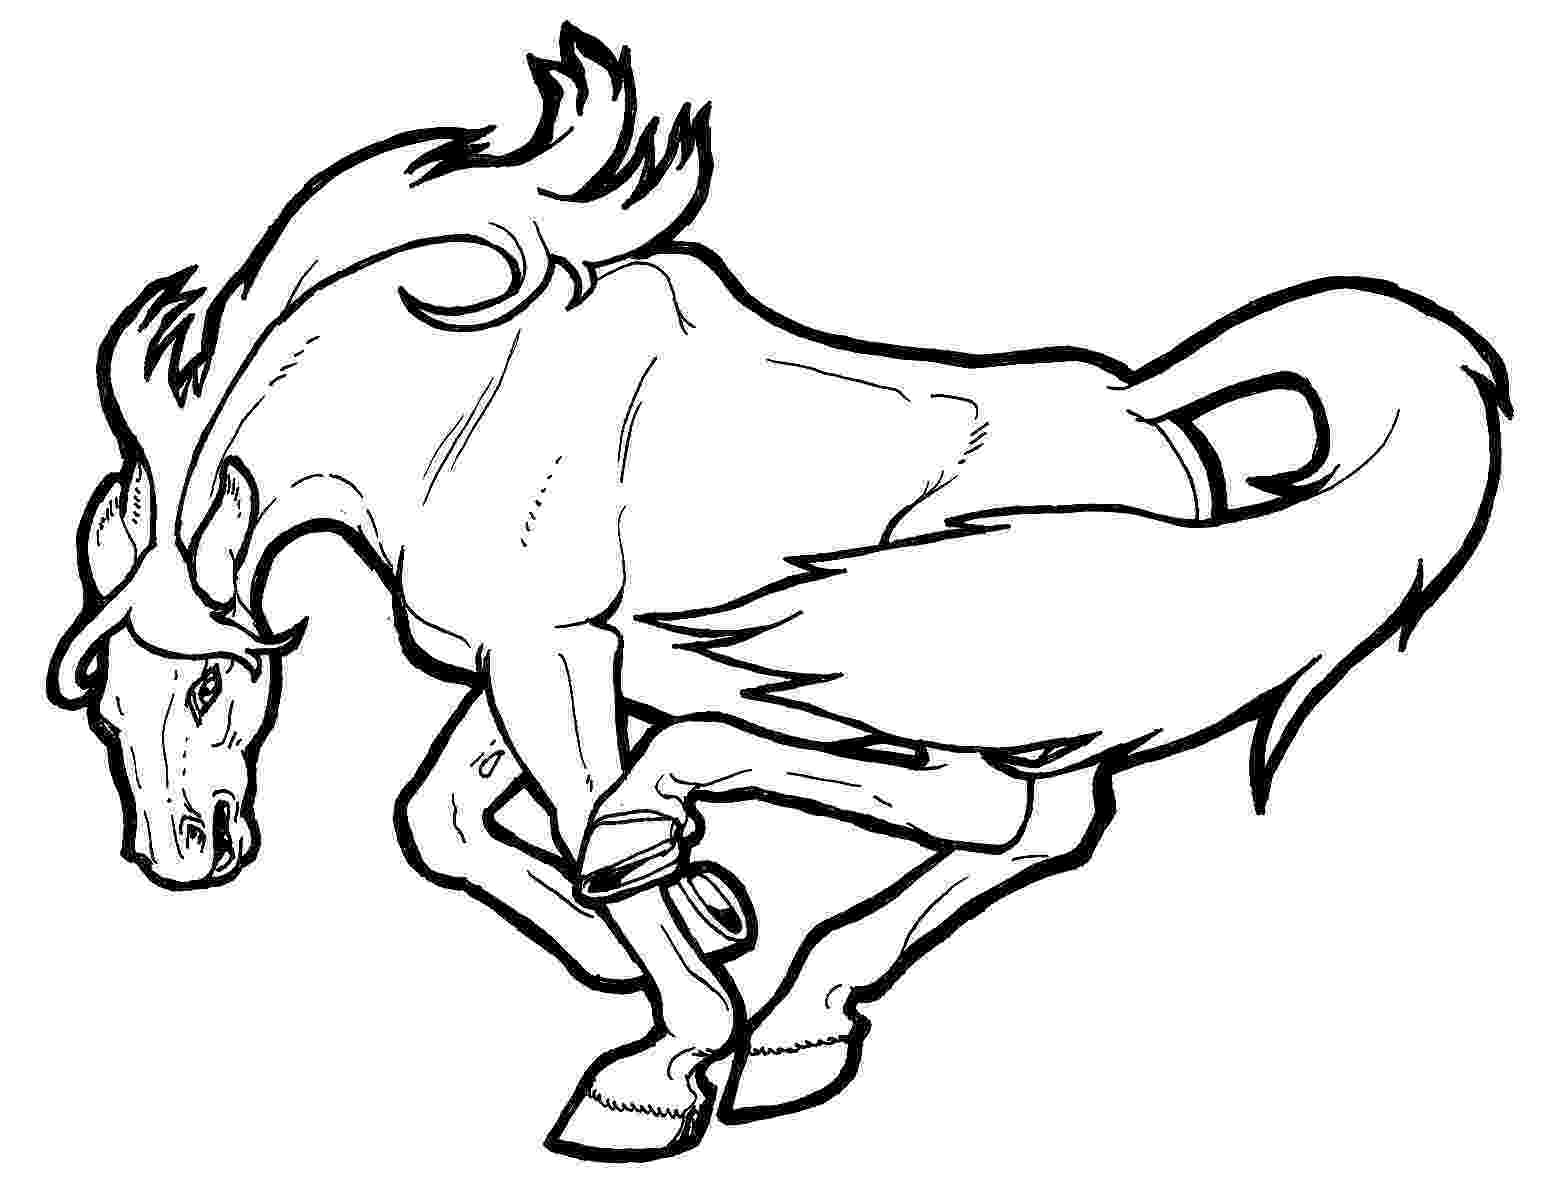 horse color sheet horse coloring pages 1001 coloringpages animals sheet horse color